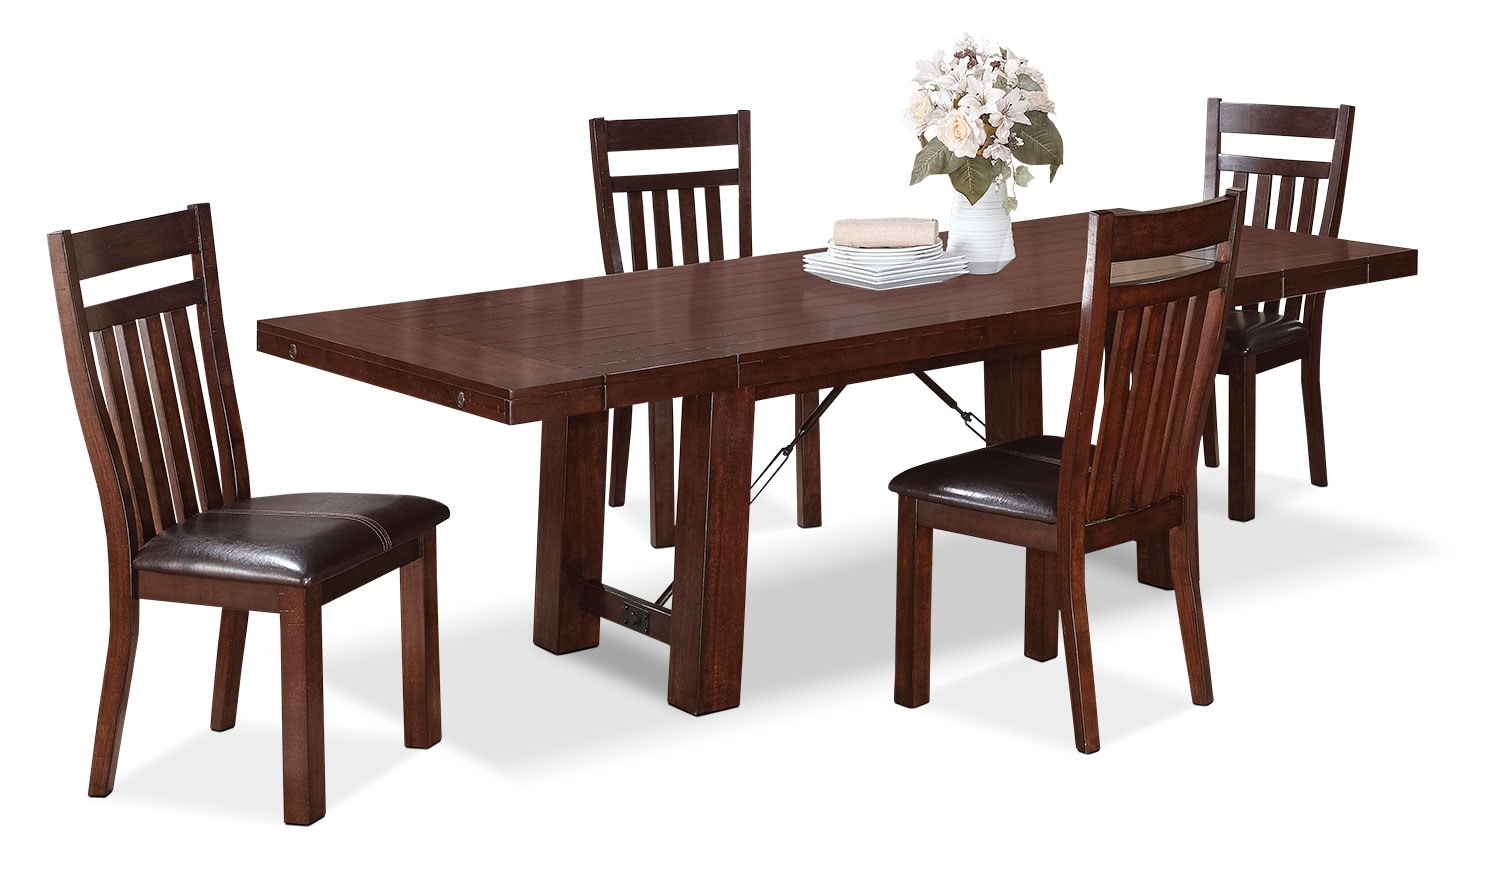 Dining Room Furniture - Sonoma 5-Piece Dining Package